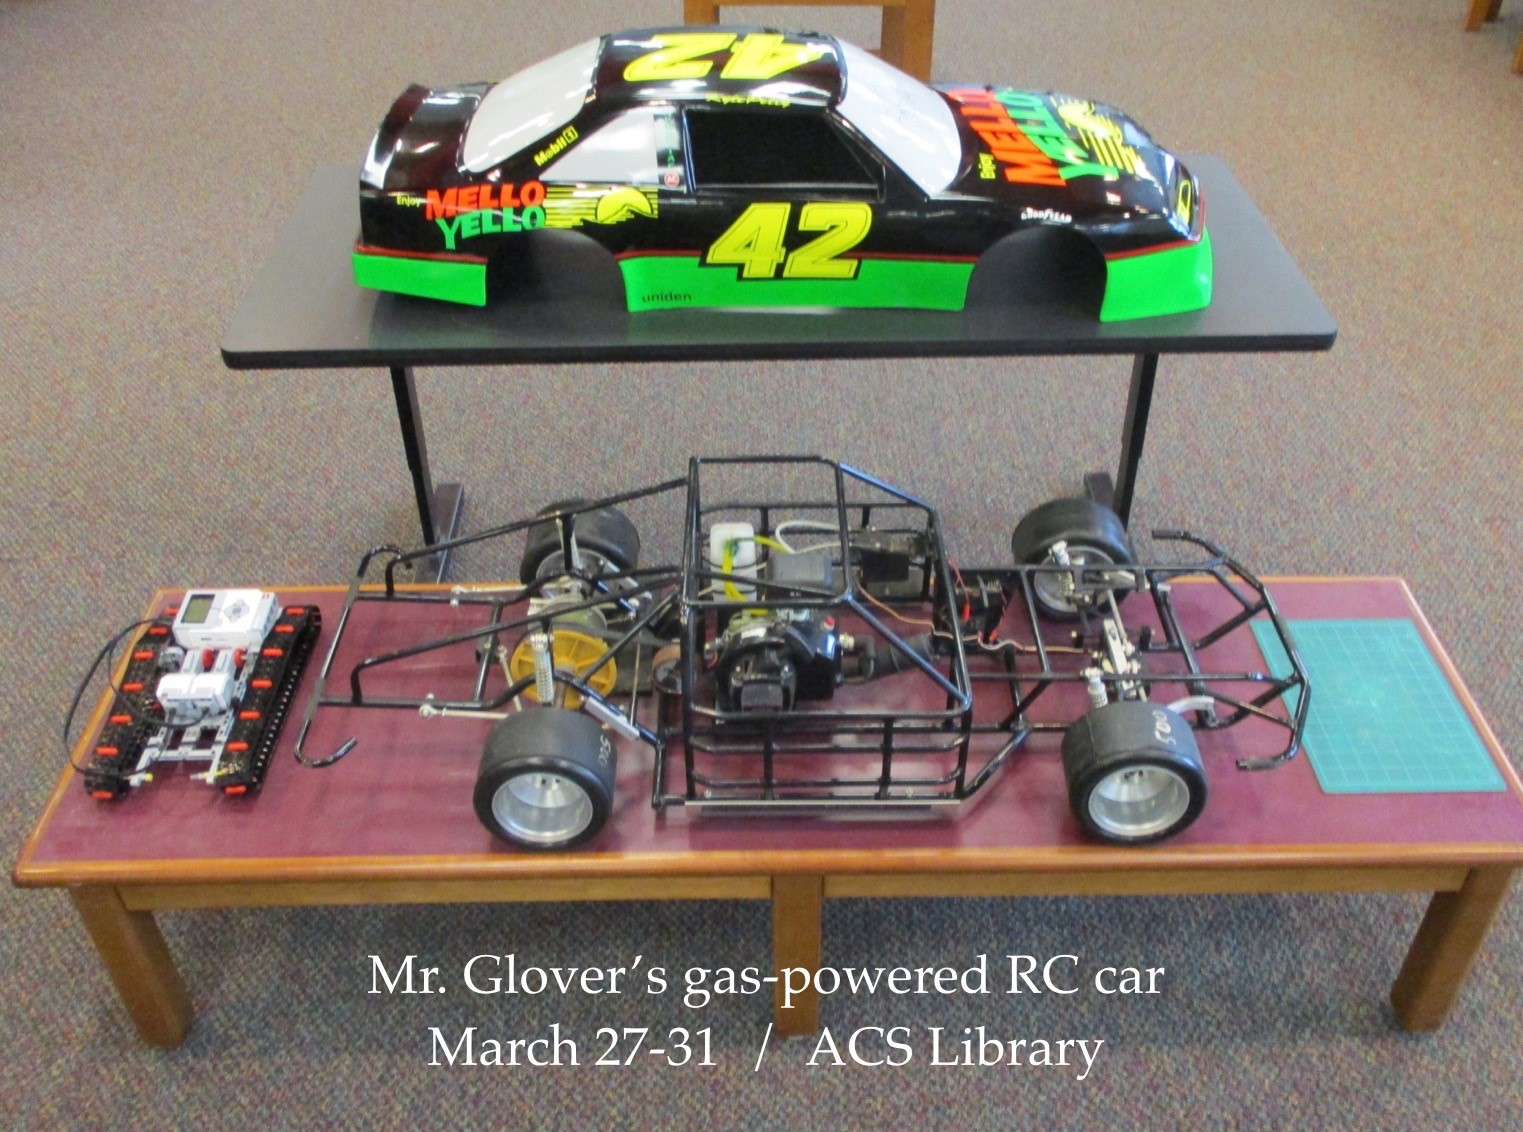 ACSLIB Poster: Large-scale RC car in library MakerSpace.